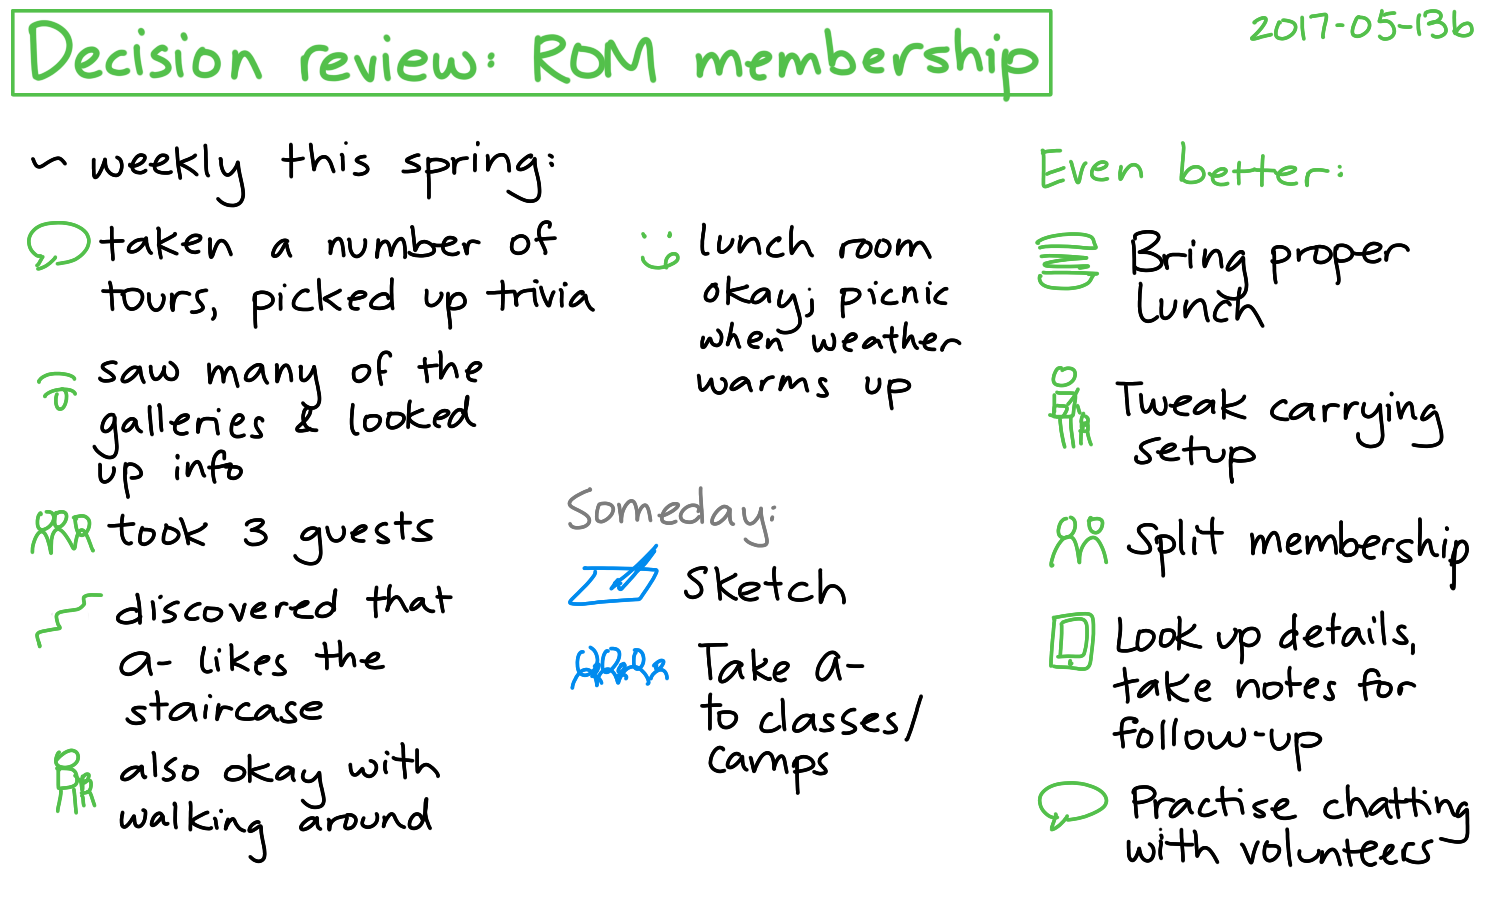 2017-05-13b Decision review - ROM membership #decision #review.png